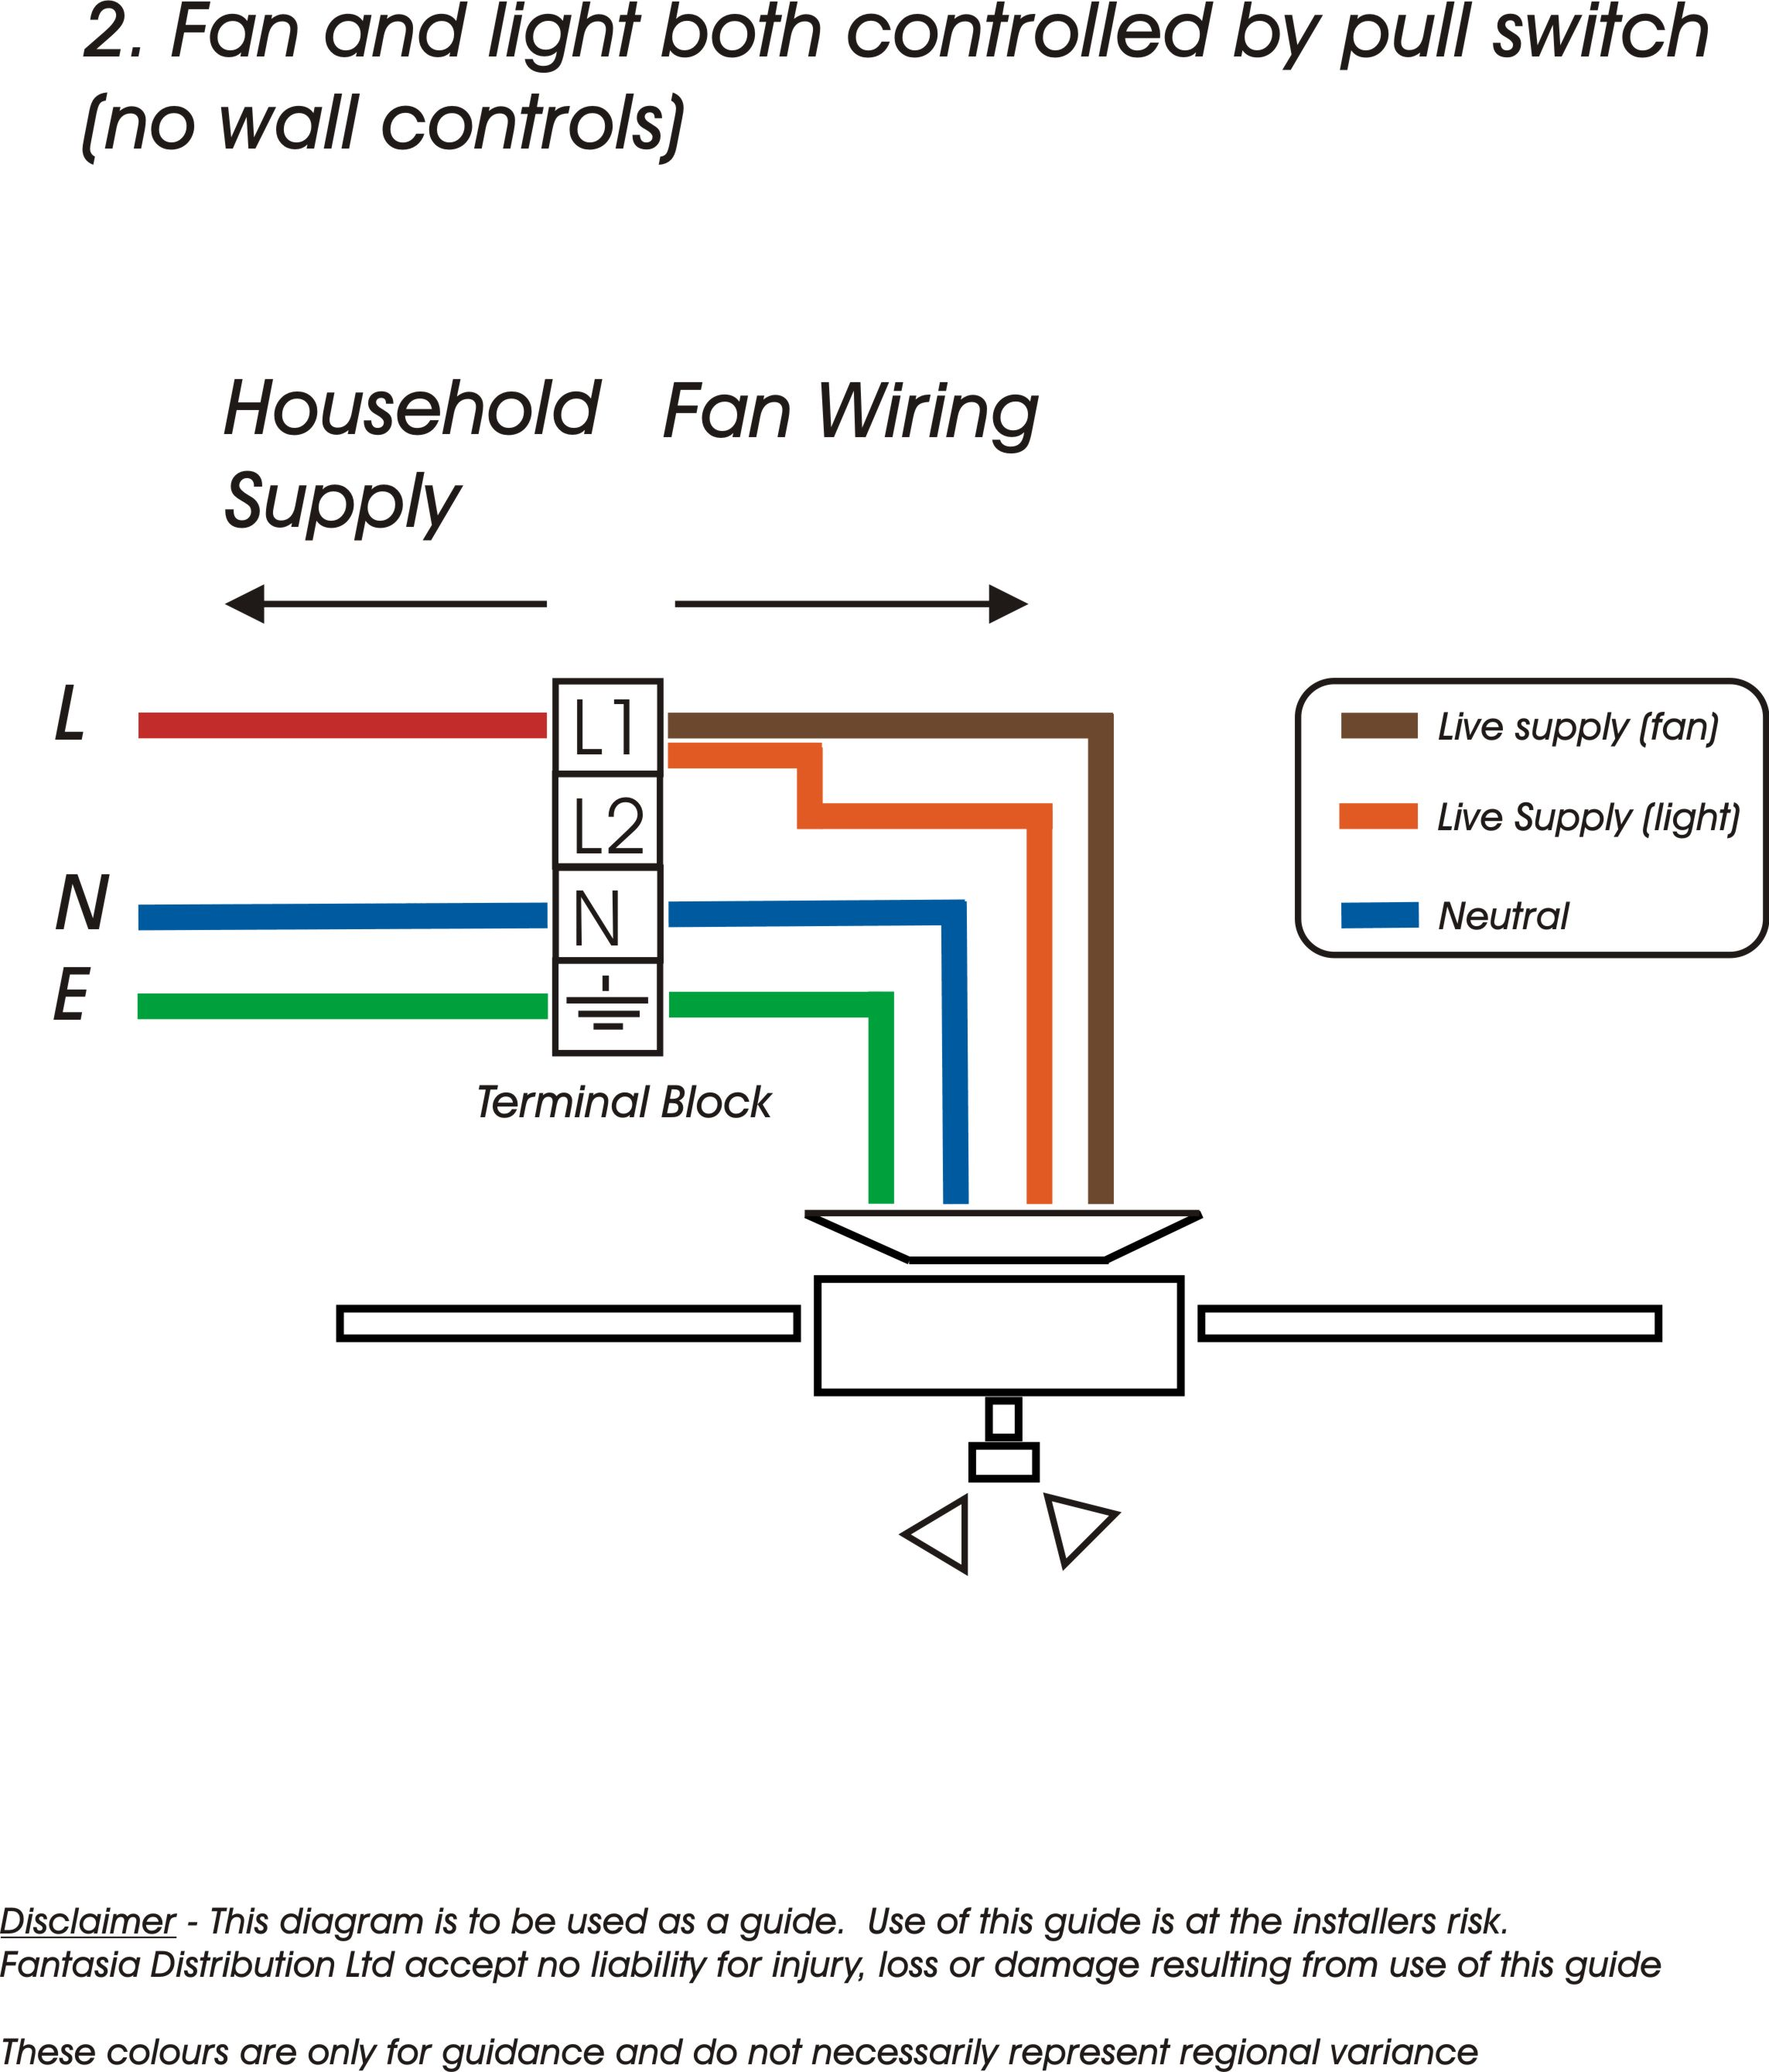 fan wire diagram colors ver wiring diagram rh 6 ghnwe kizilaymadensuyu de how to wire a ceiling fan colors ceiling fan switch wiring colors